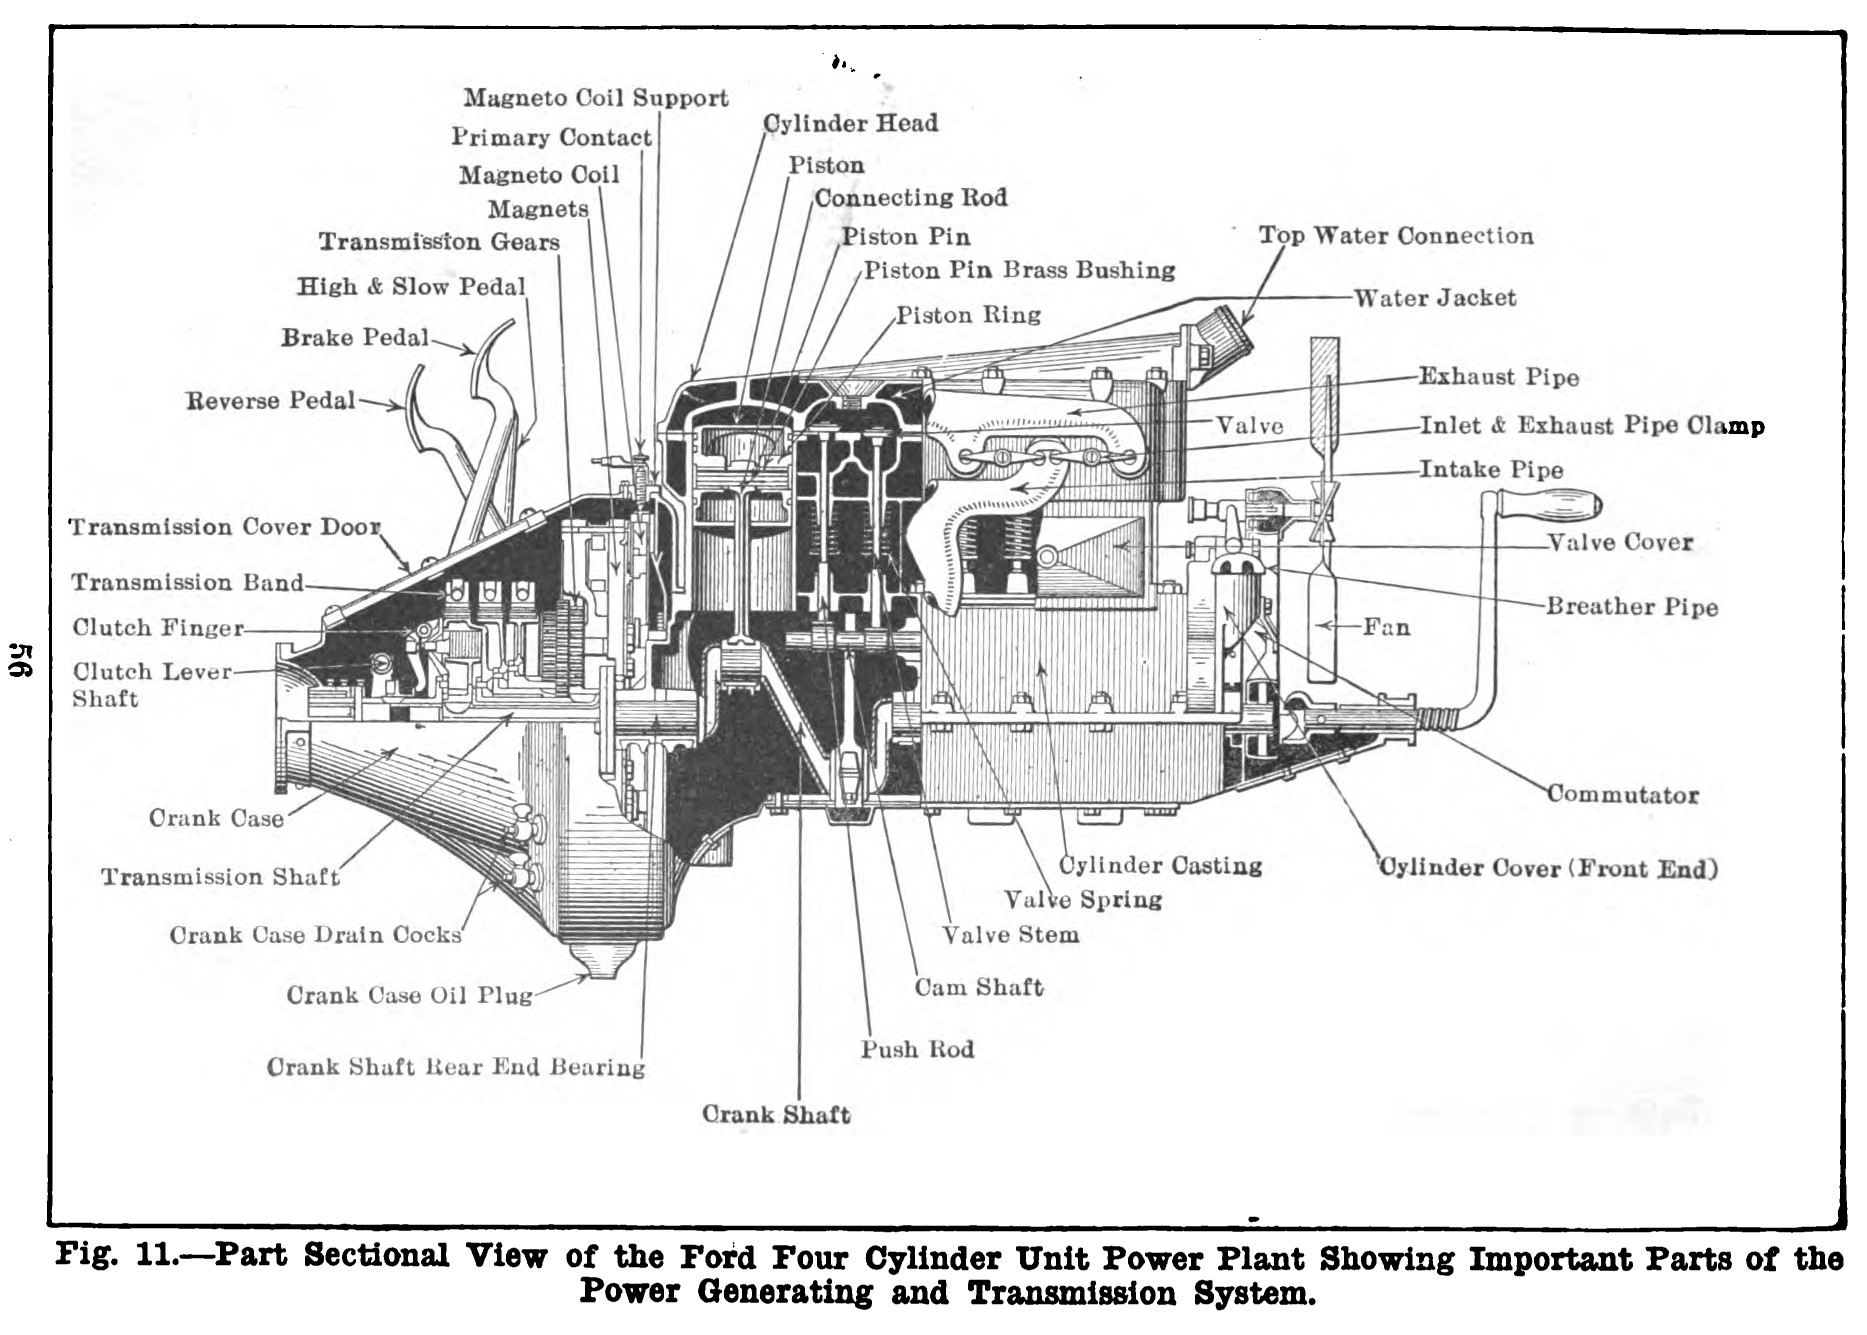 Car Engine Parts Diagram 2015 Mustang Amazing For Remodel Ideas With Showroom Wiring Of